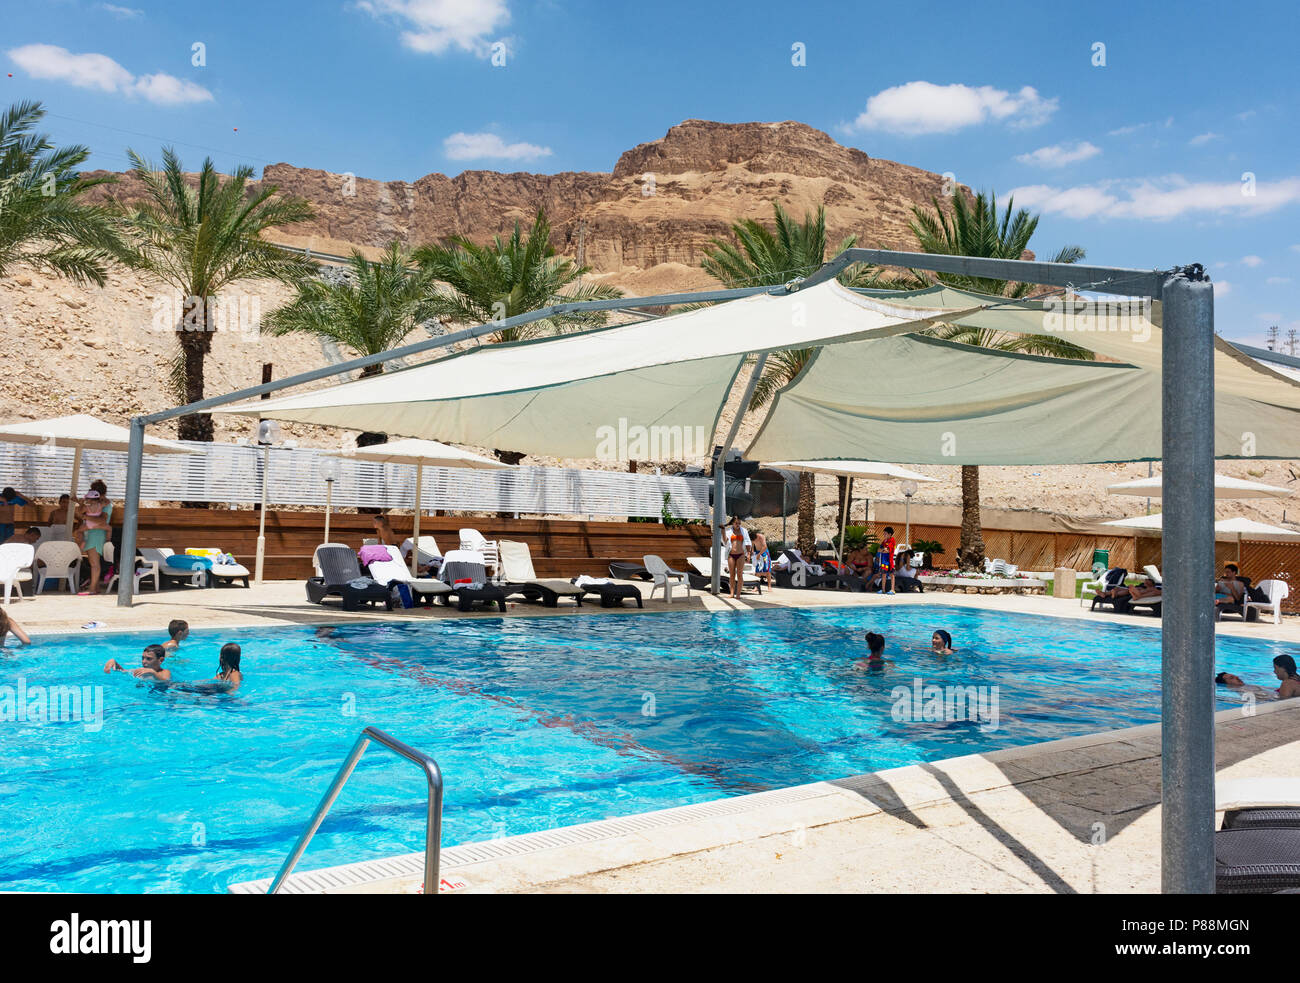 outdoor, partially shaded swimming pool at a hotel in Ein Bokek on the Dead Sea with desert mountain in the background - Stock Image